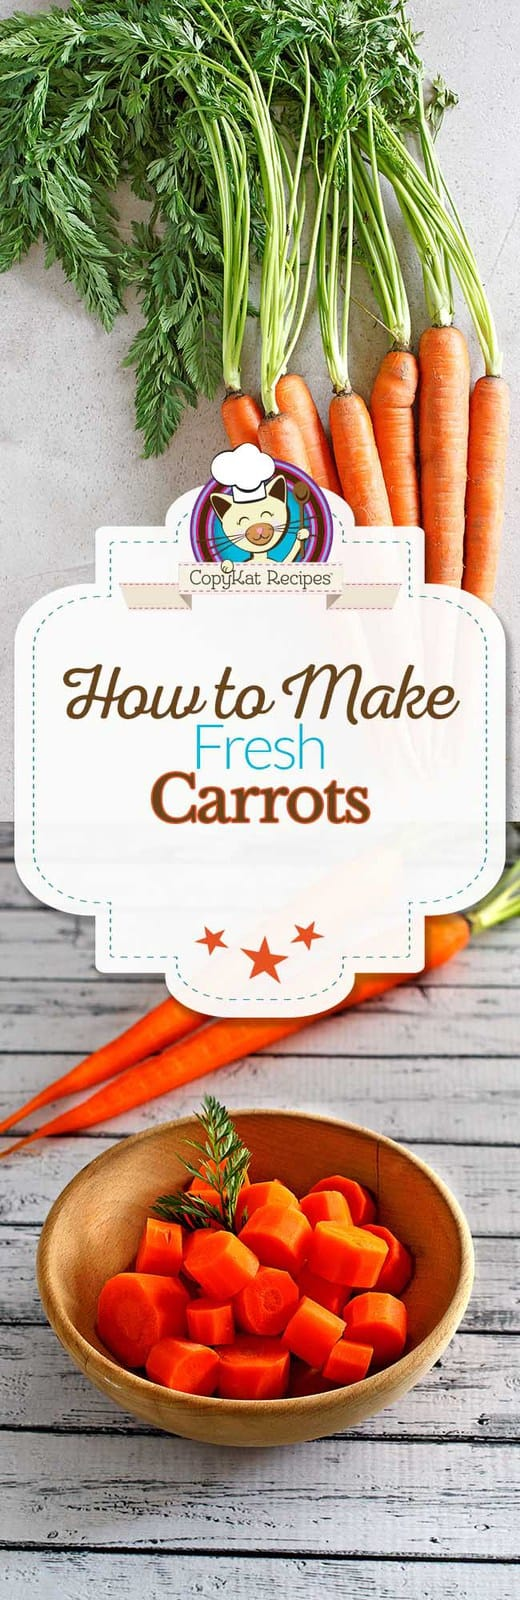 Learn how to cook fresh carrots, kick the can, and make fresh carrots.